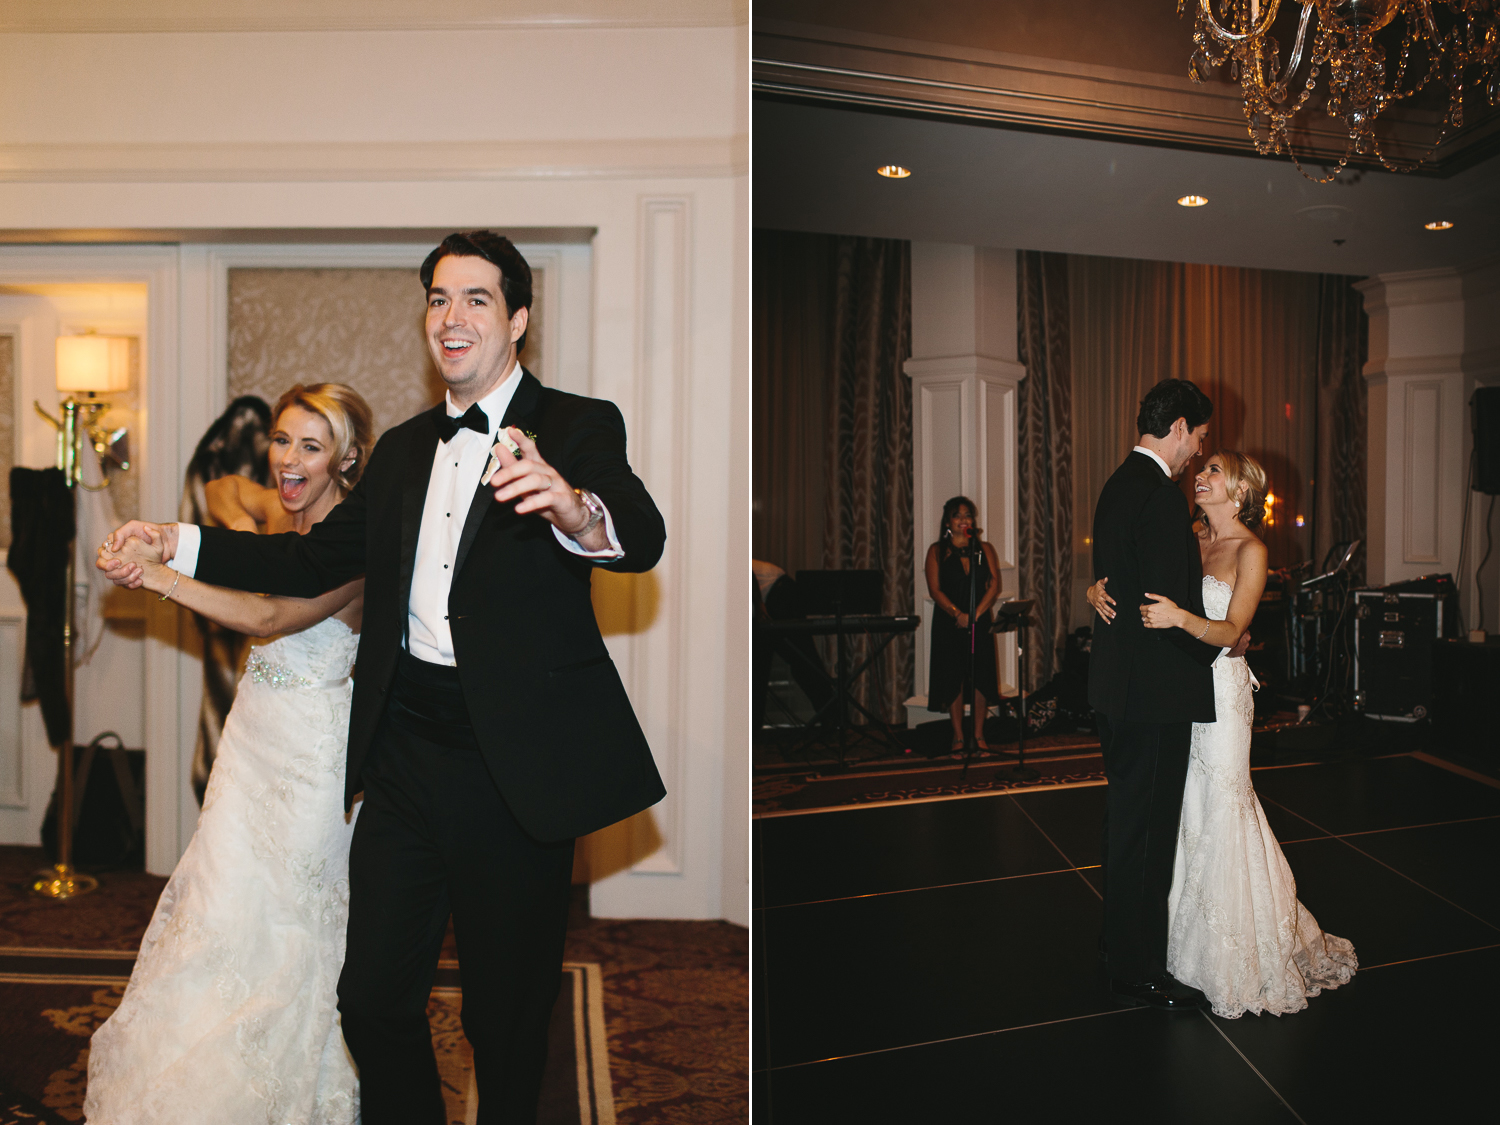 bride and groom's entrance and first dance